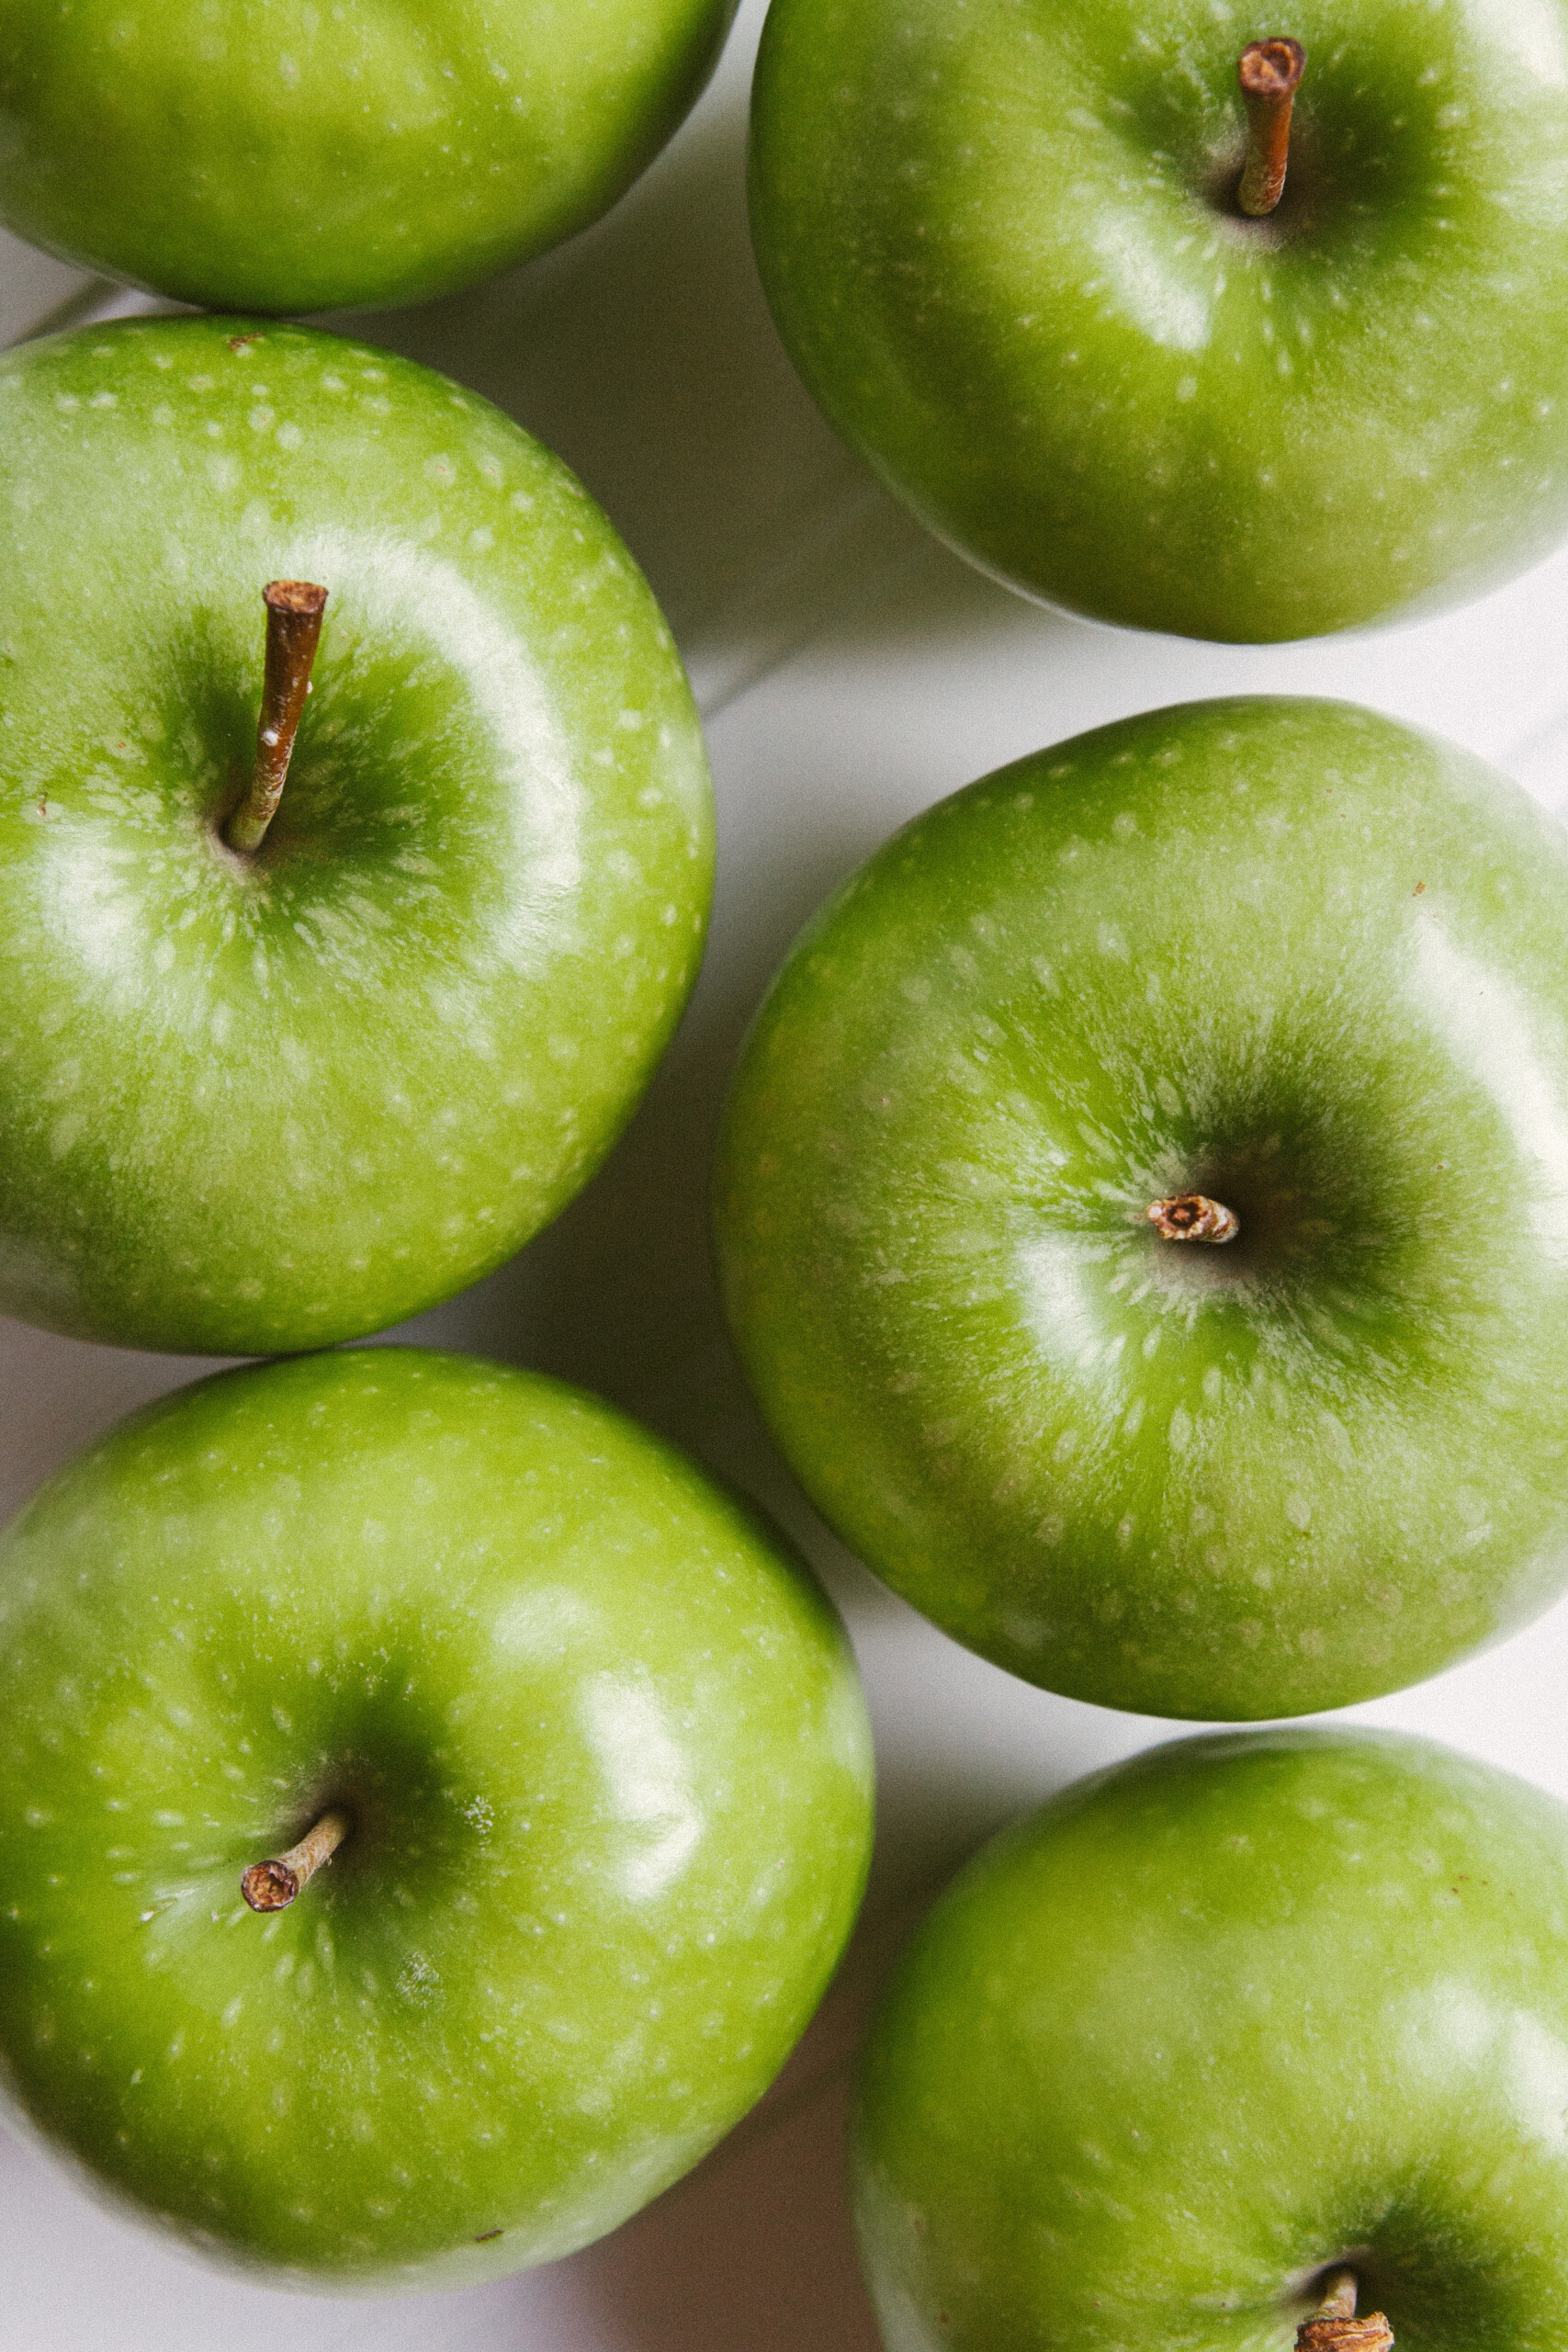 Up close photo of green apples